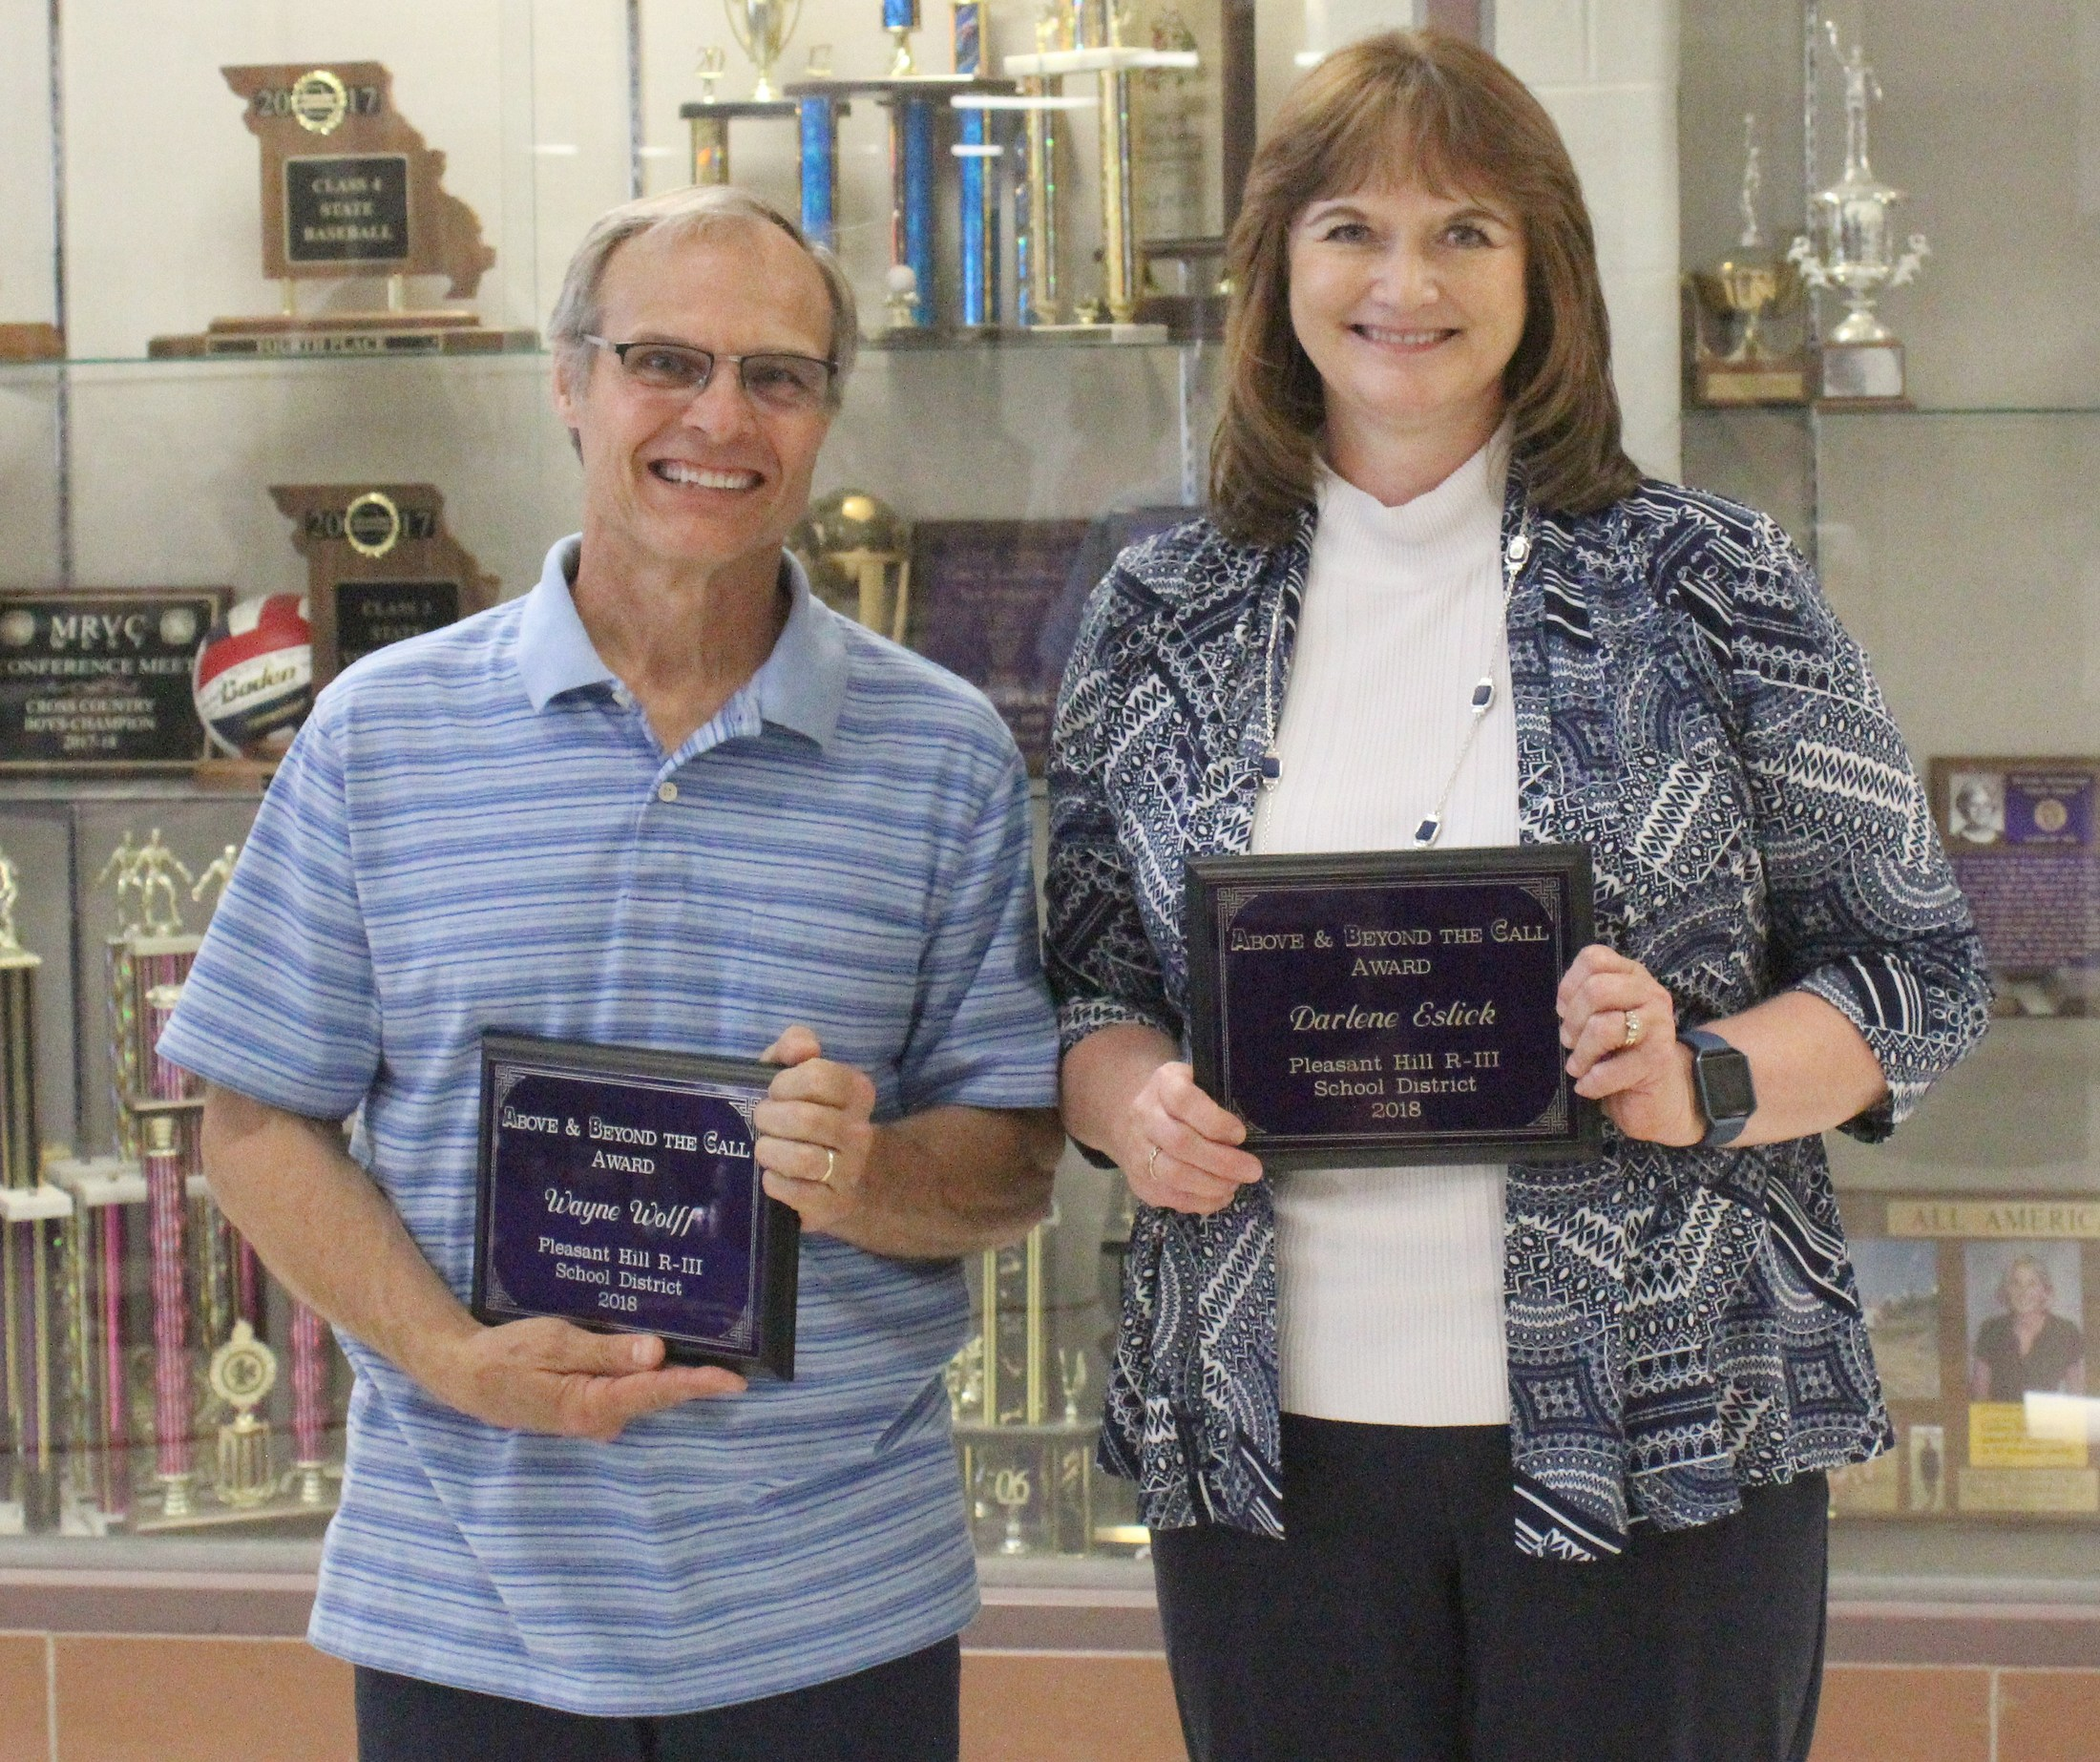 District News About Us Pleasant Hill R Iii